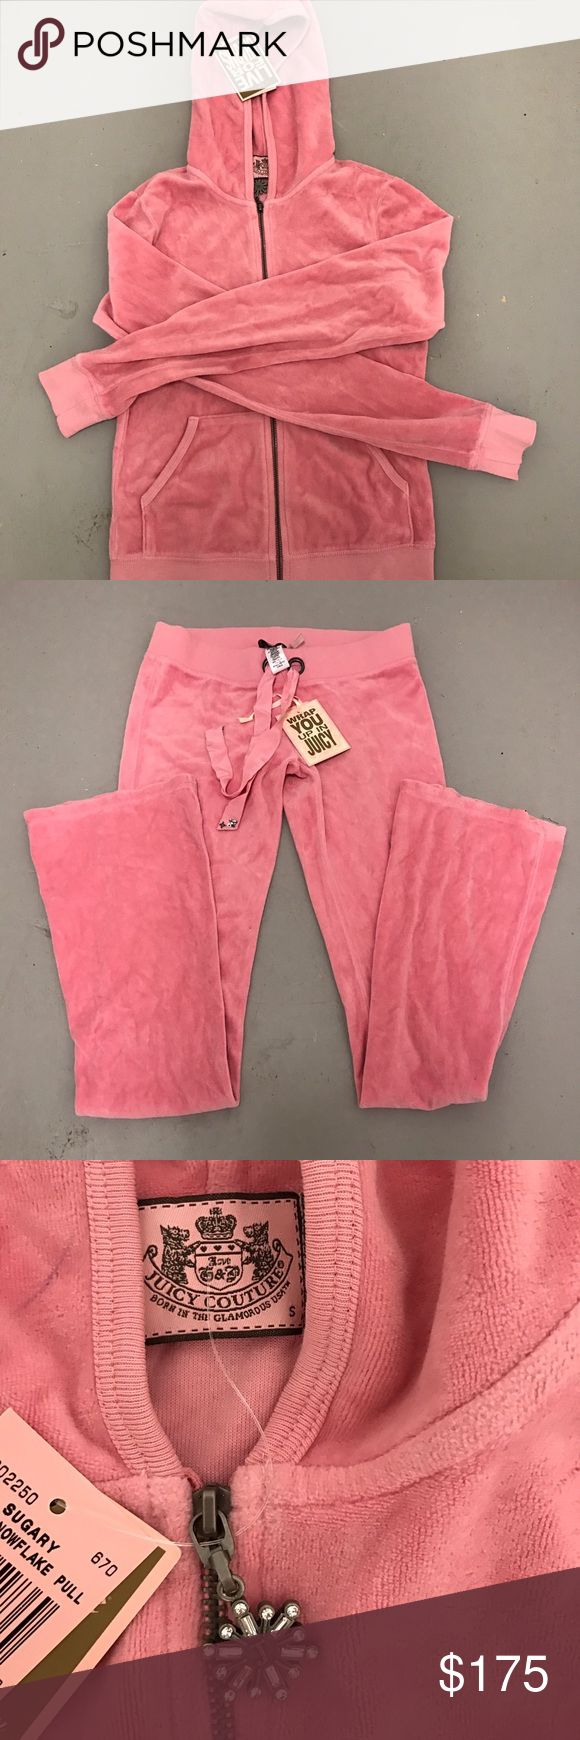 Juicy Couture complete jumpsuit size small Juicy Couture tracksuit size small. Light-medium pink. New with tags. Zipper has jeweled embellishment. Juicy Couture Pants Jumpsuits & Rompers